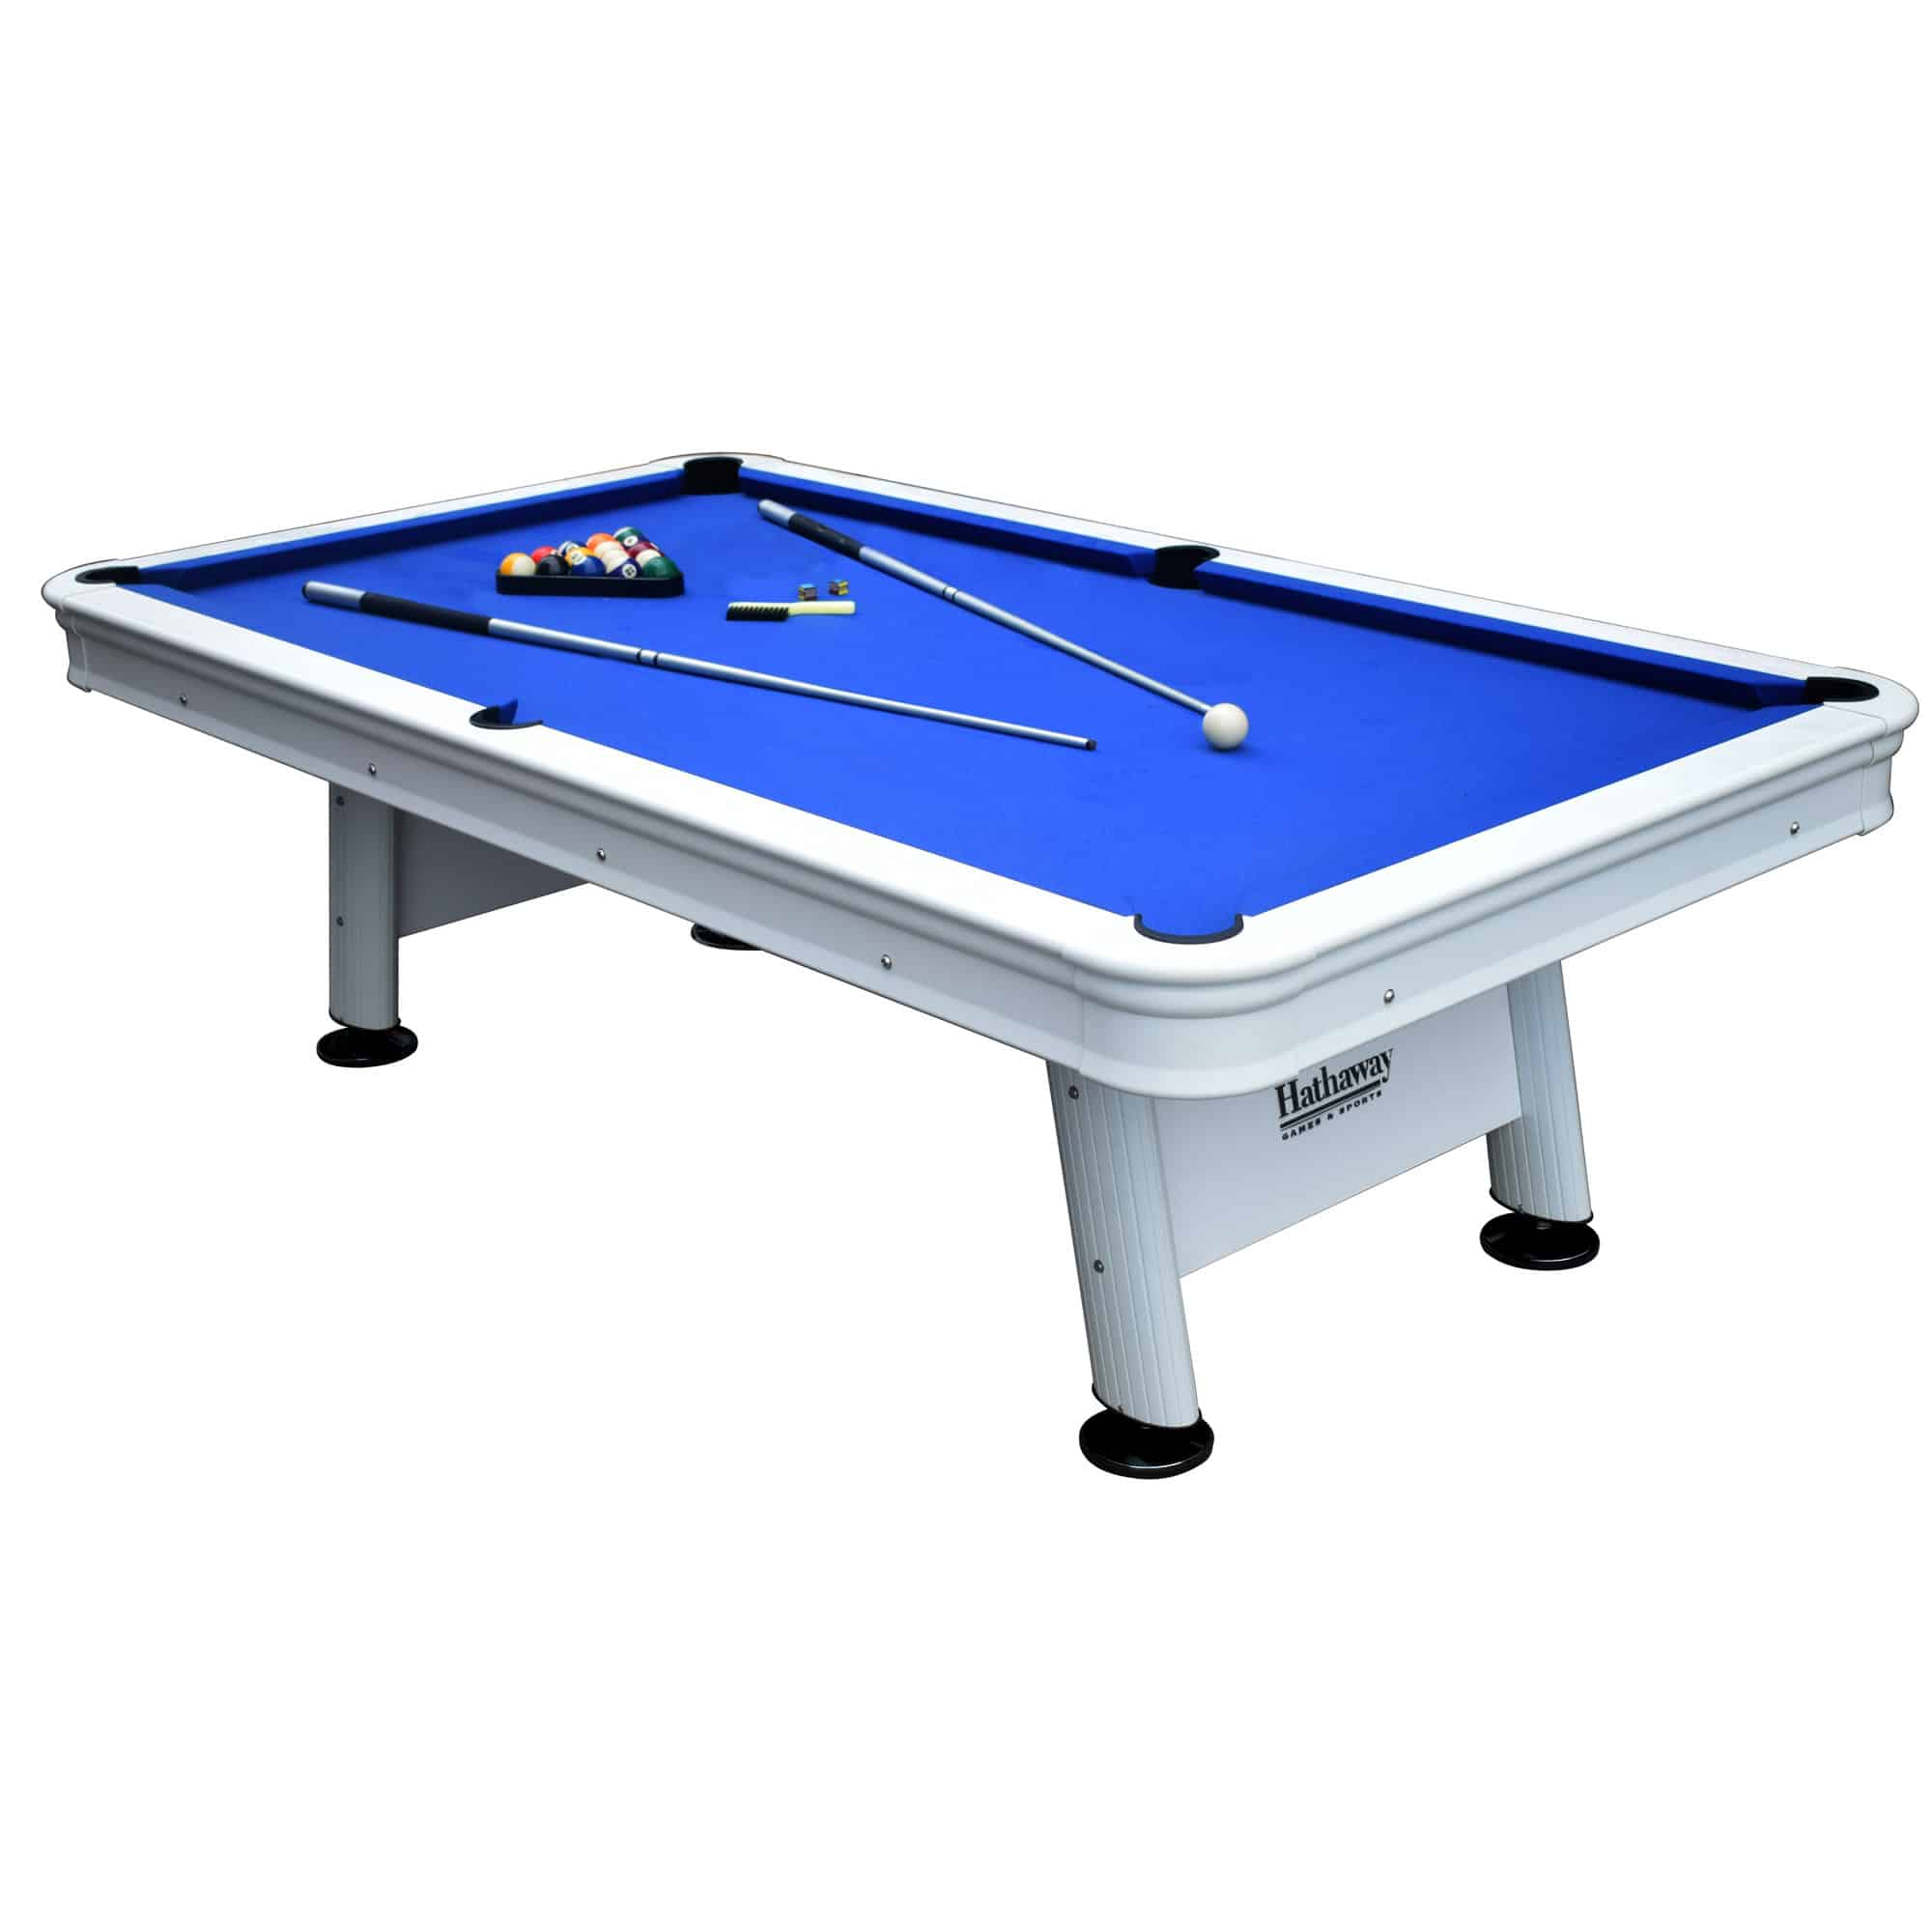 Alpine 8-ft Outdoor Pool Table With Aluminum Rails